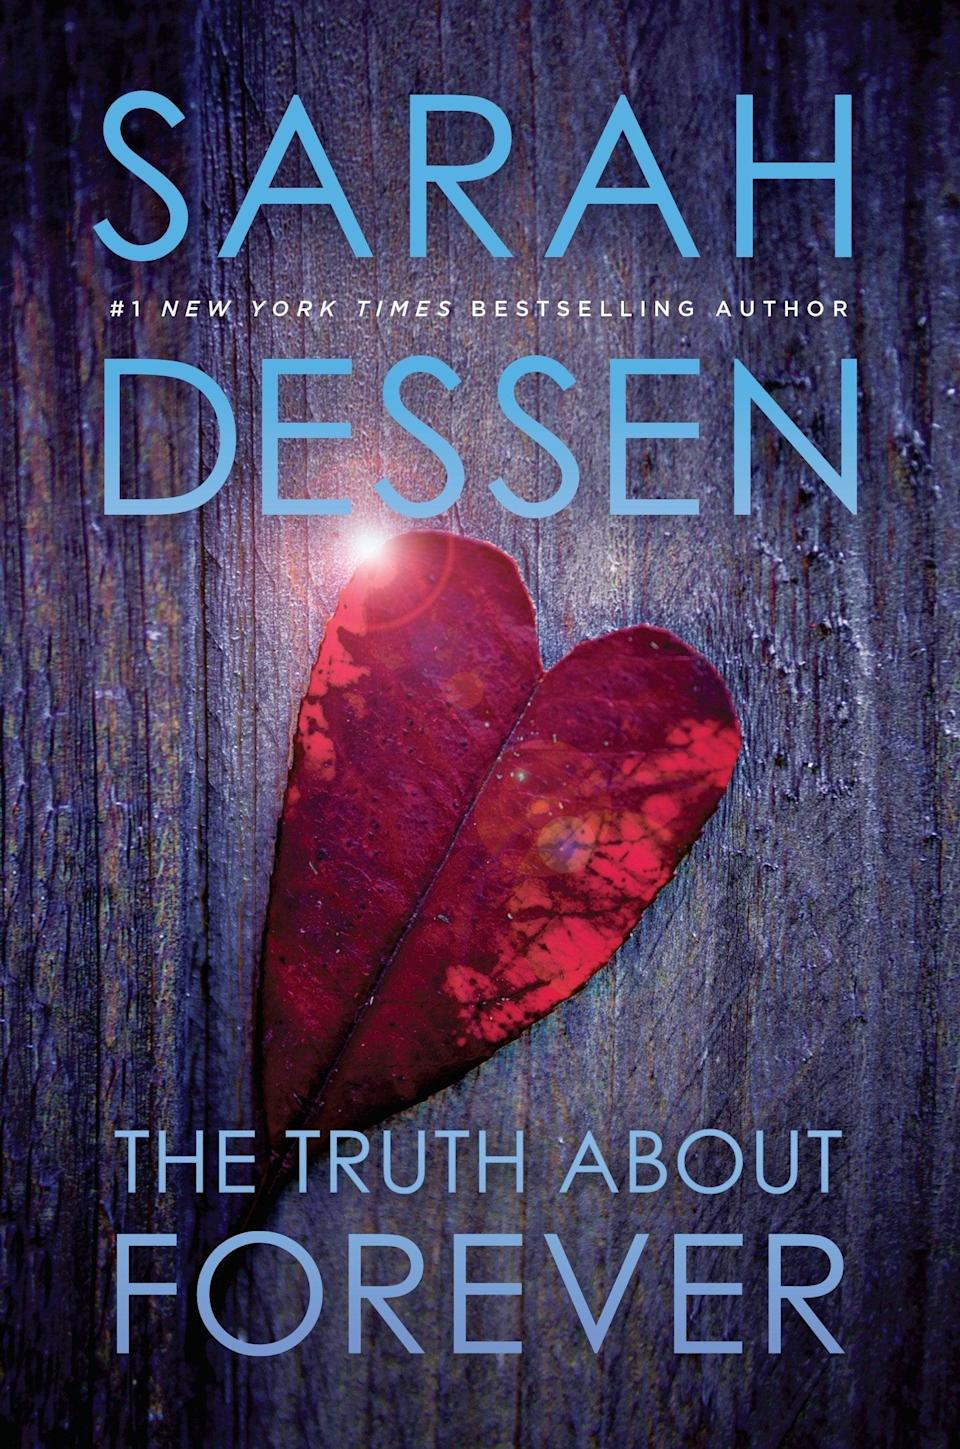 """<p>""""<span><strong>The Truth About Forever</strong></span> ($9, originally $11) has all the components that make a Sarah Dessen novel so timeless. It all starts with Macy, a perfectionist who hides the lingering pain from her father's death until she falls in with the quirky, chaotic employees at Wish Catering. There, she meets Wes, the sweet, strong, and super-hot yet semi-off-limits guy whose chemistry with her is off the charts - and who might be the one to bring her walls down, if she lets him. The romance, the coming-of-age story, the simmering small-town summer heat - I adored this book in high school, and every time I crack it open, I fall in love with Macy, Wes, and Wish Catering all over again. In fact, I think I just talked myself into another reread."""" - Maggie Ryan, assistant editor, fitness</p>"""